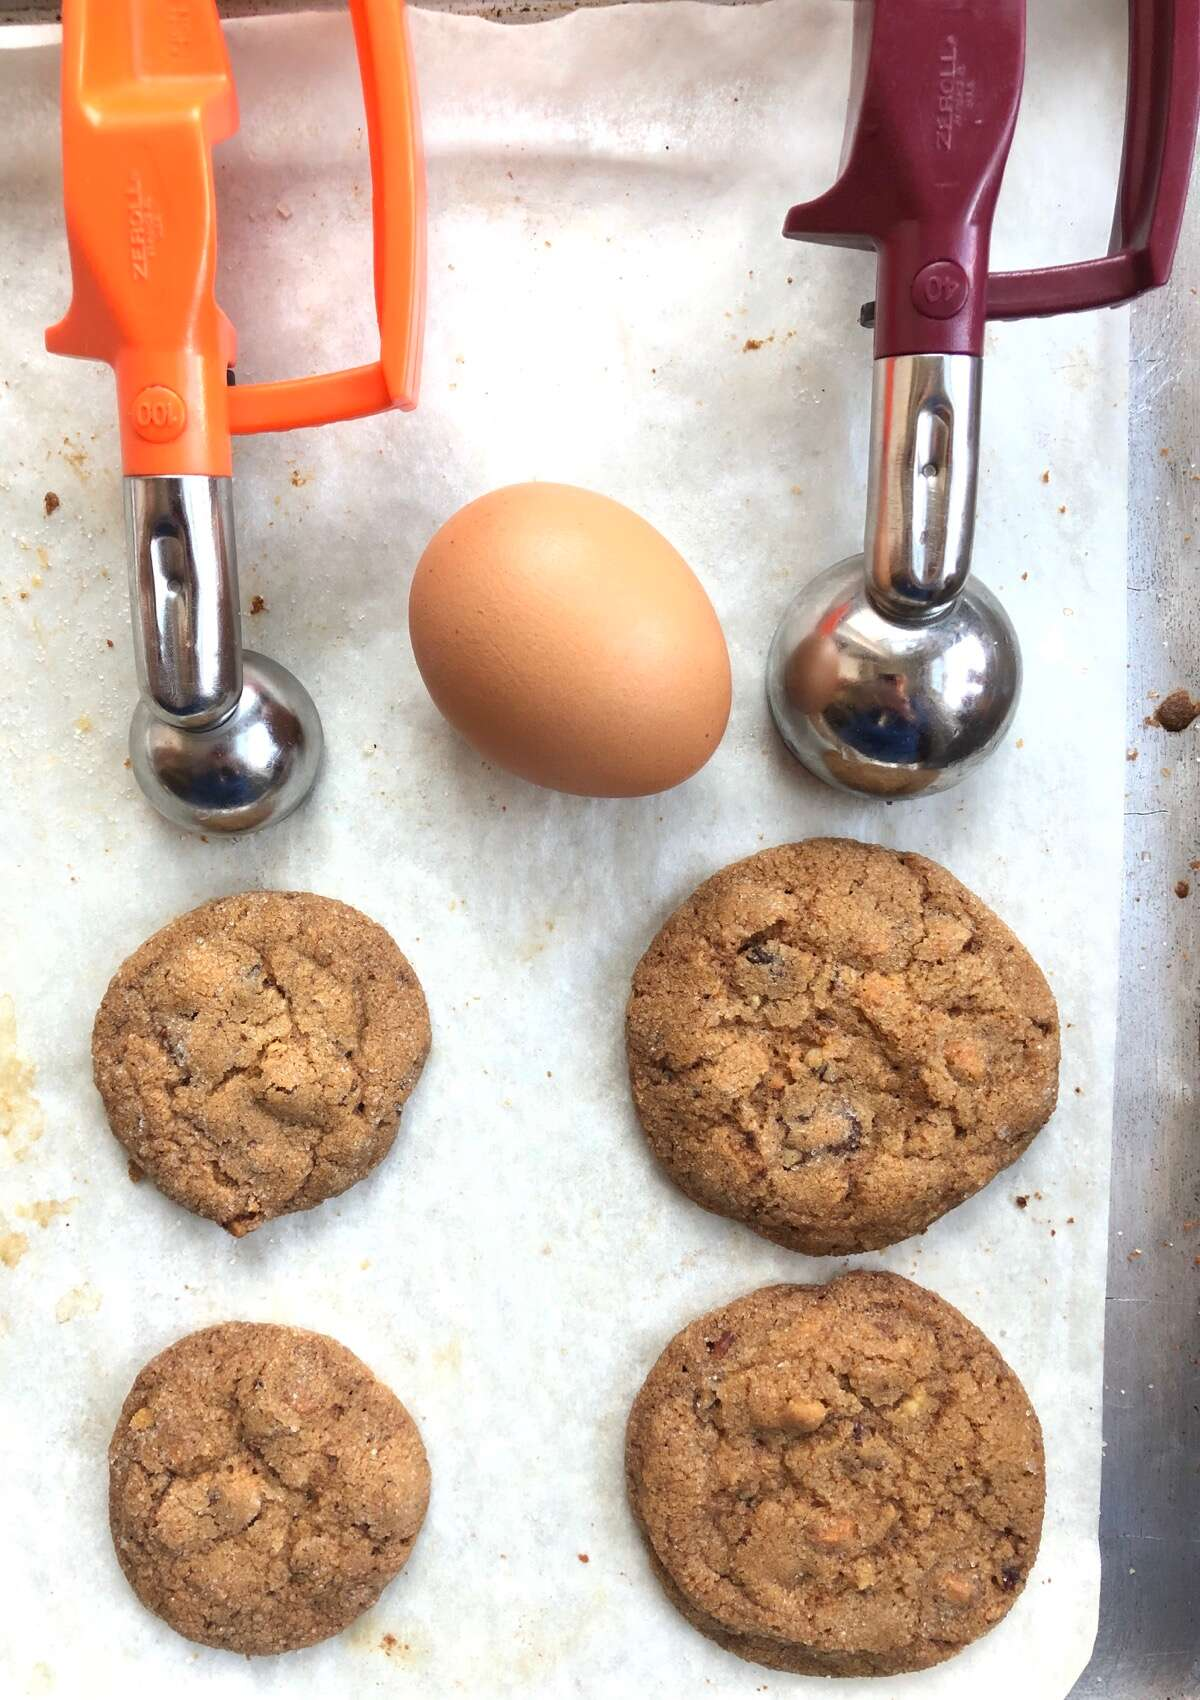 Two cookies on a baking sheet, one made with a tablespoon scoop, a smaller one made with a teaspoon scoop.